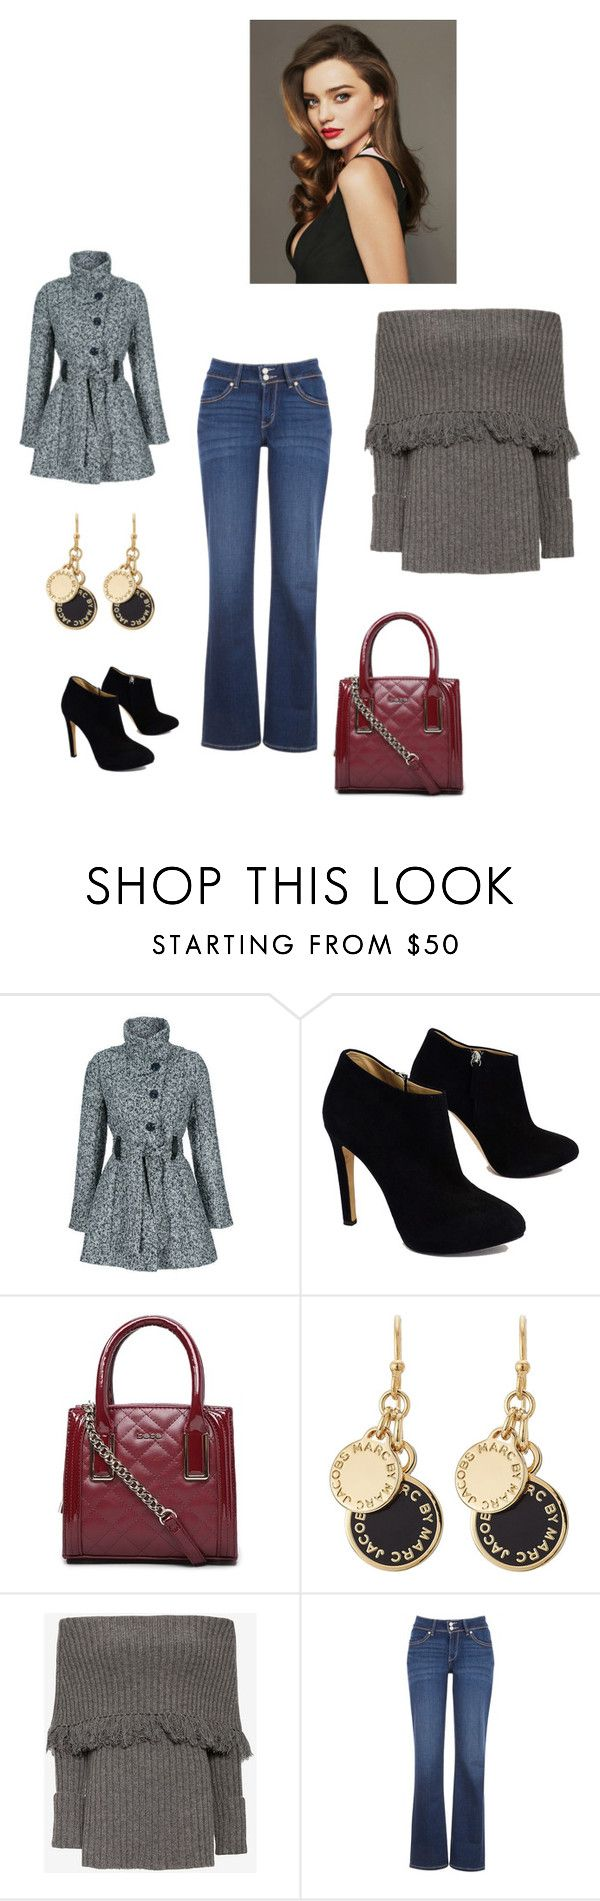 """weiblicher Stil"" by taniaazzini on Polyvore featuring moda, Giuseppe Zanotti, Bebe, Kerr®, Marc by Marc Jacobs, Exclusive for Intermix e Levi's"